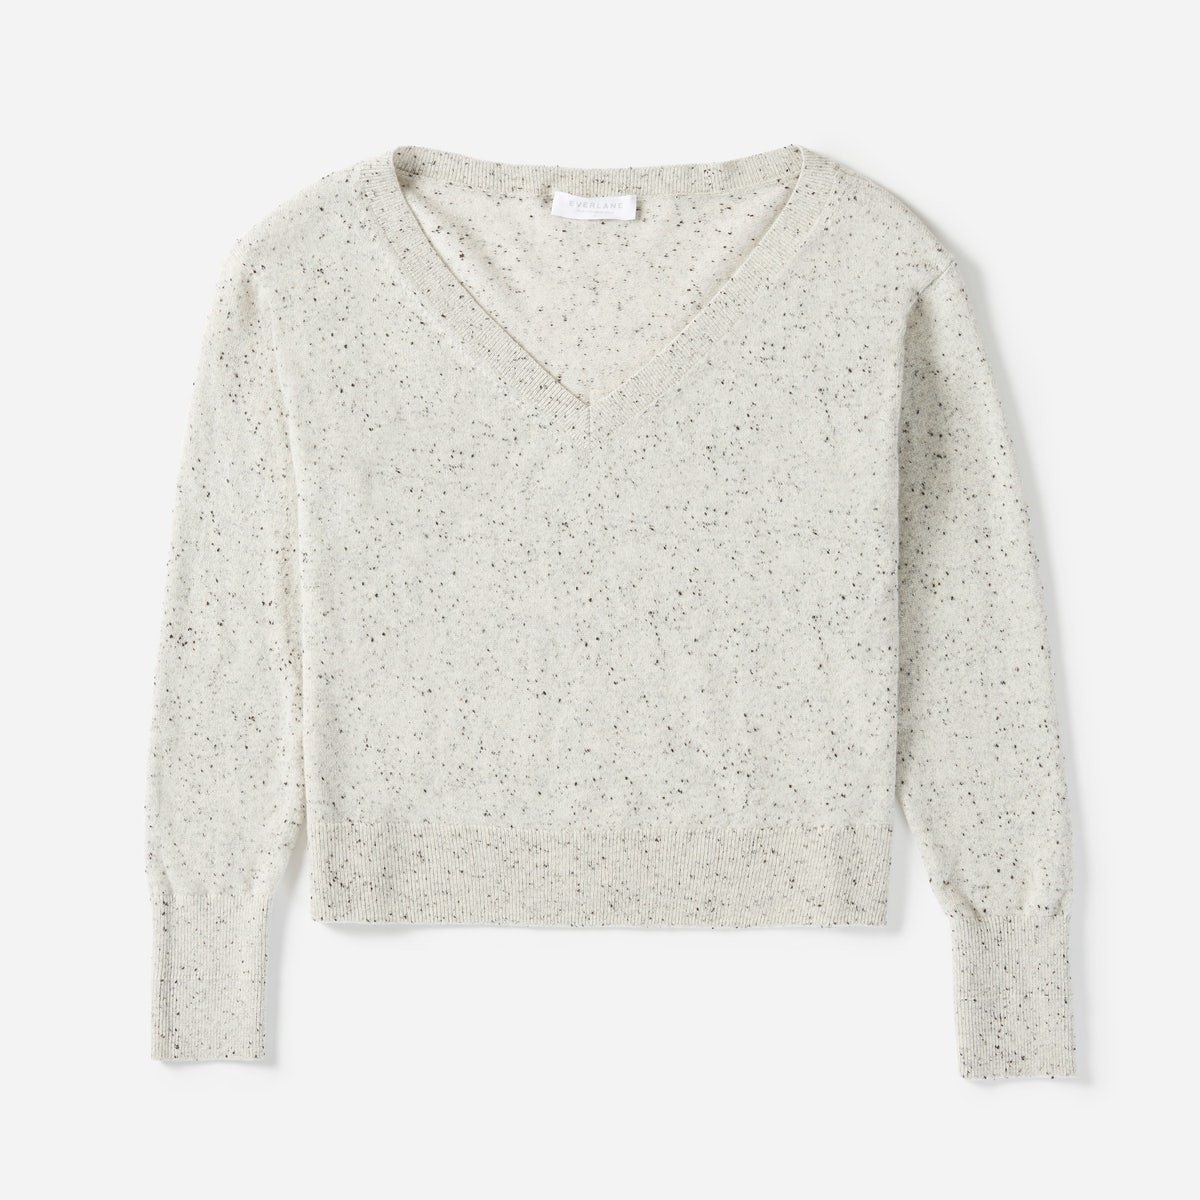 Everlane Cashmere Crop V-Neck Sweater Review